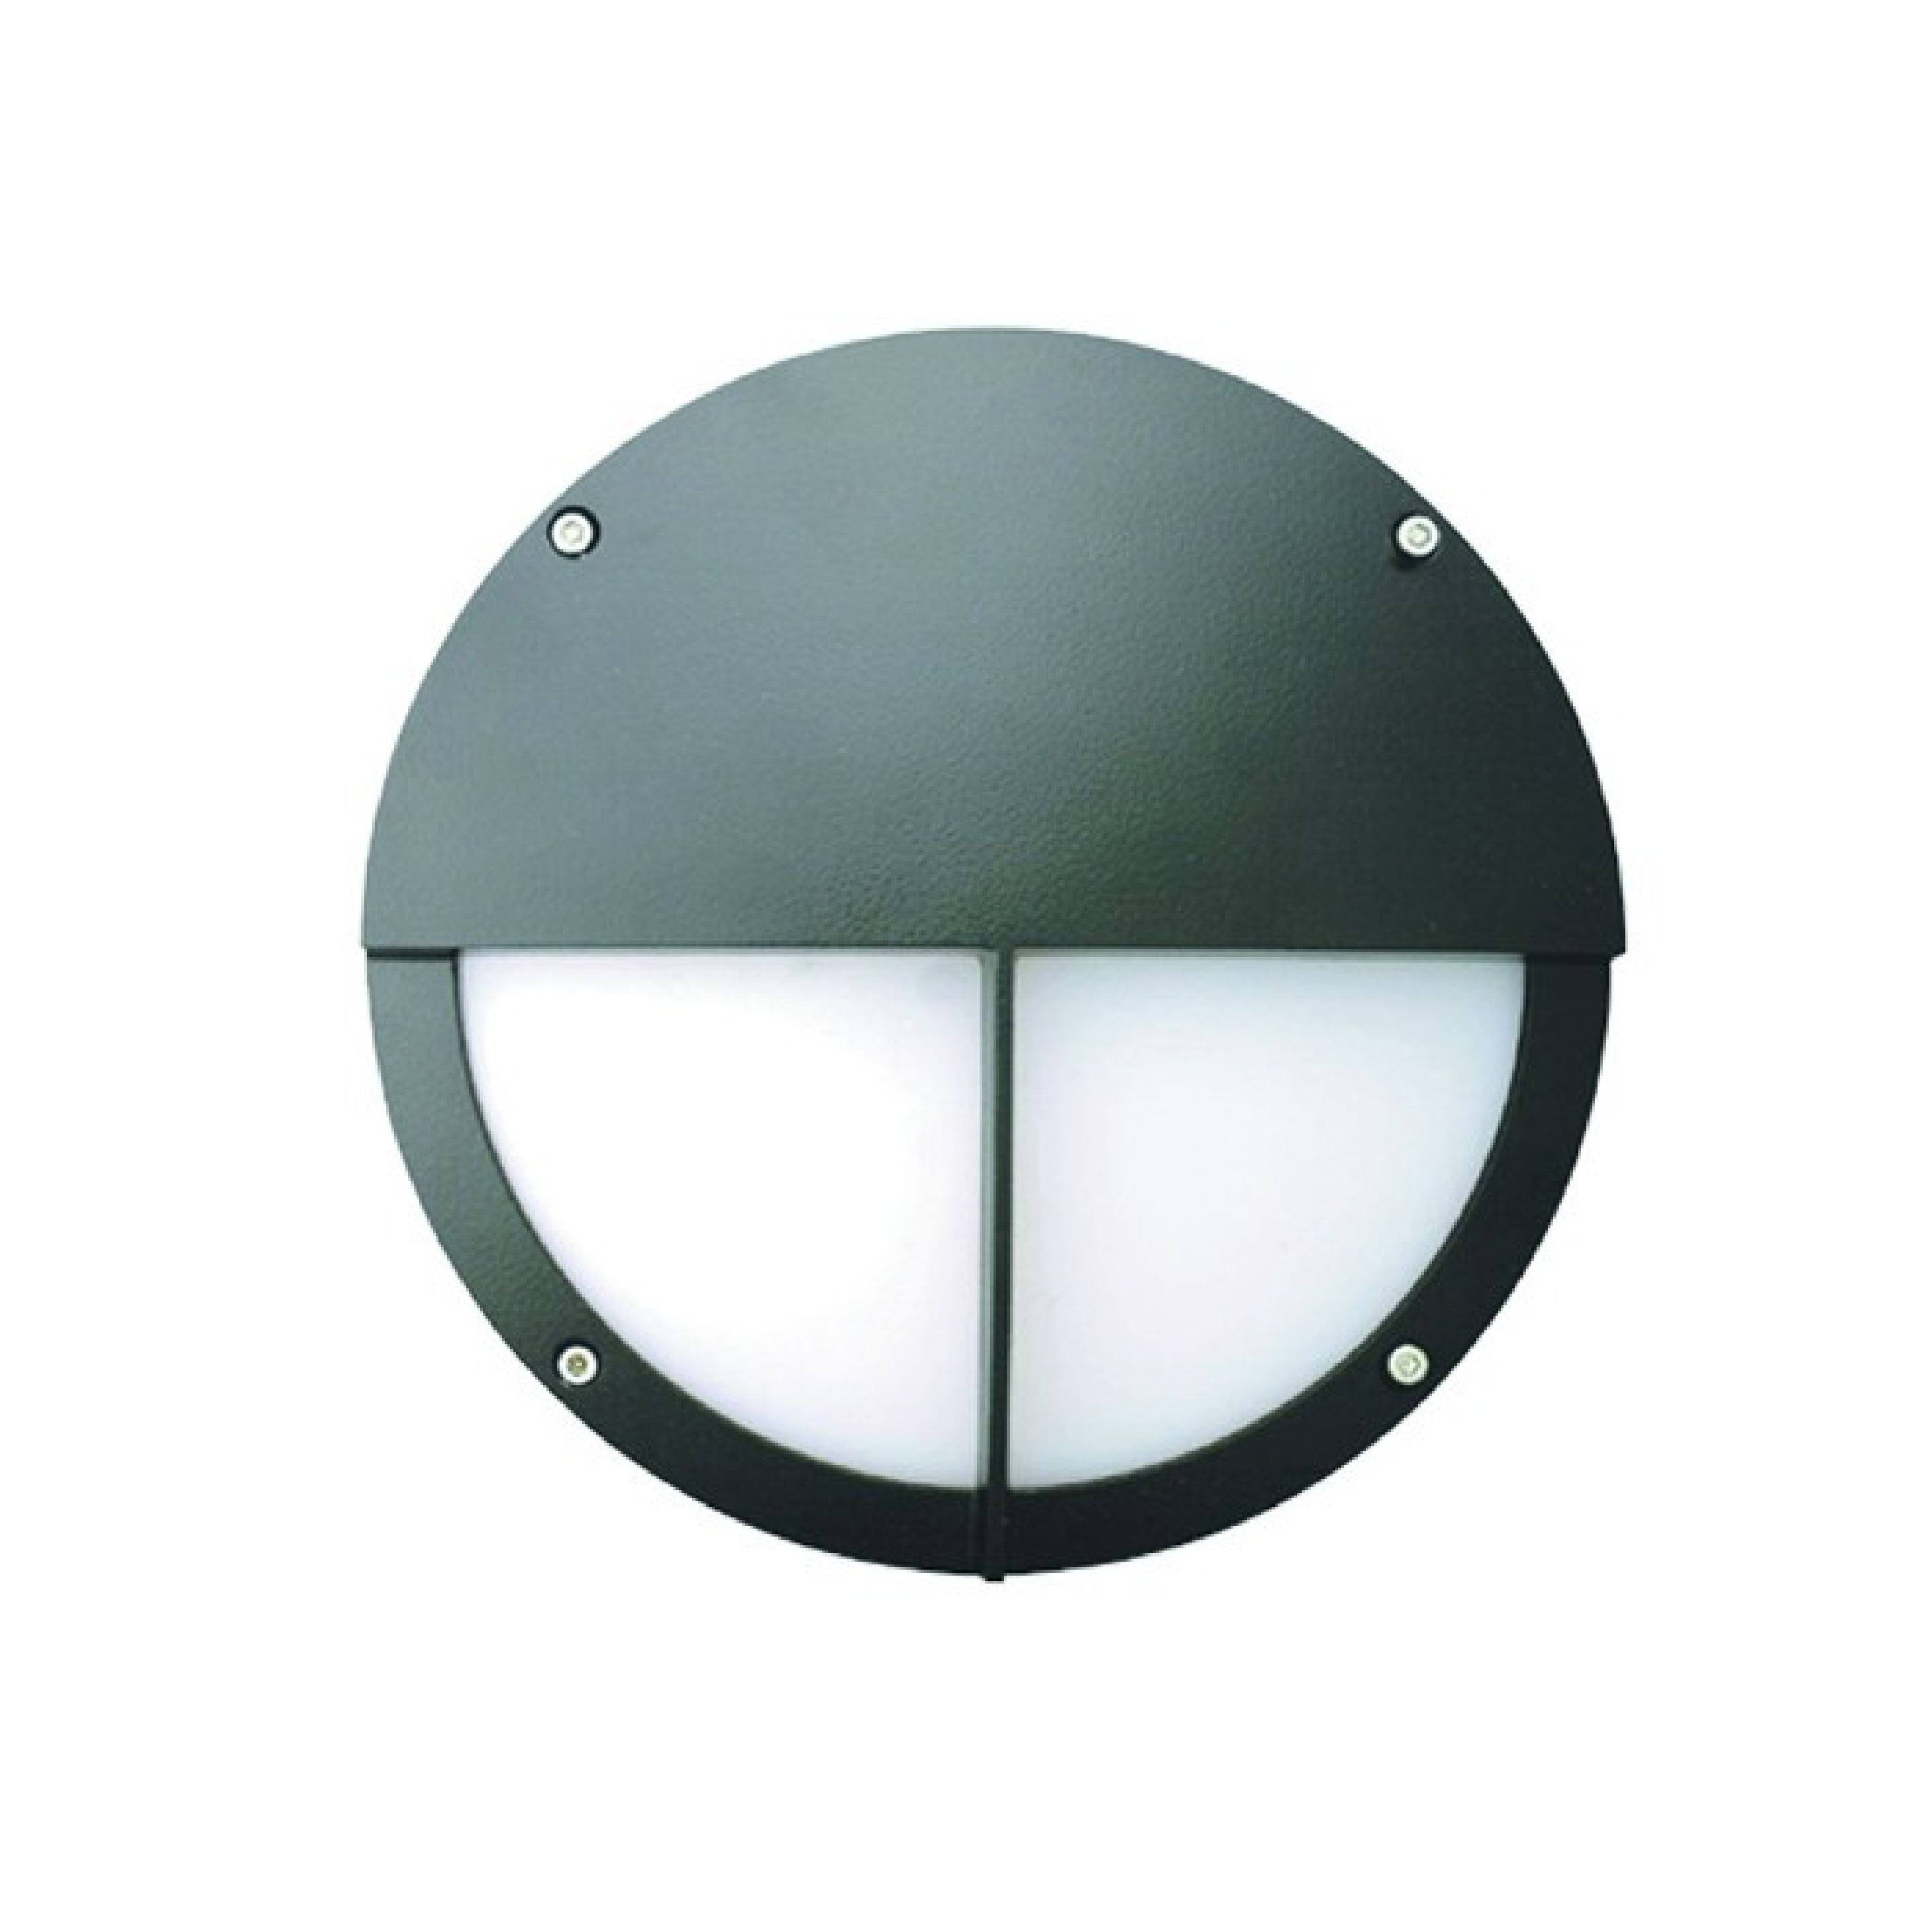 Alcon Lighting 11232 Hg Sentry Architectural Led 10 Inch Round Tamper Proof Surface Mount Wall Sconce Diffused Luminaire Half Lid Guard Bar